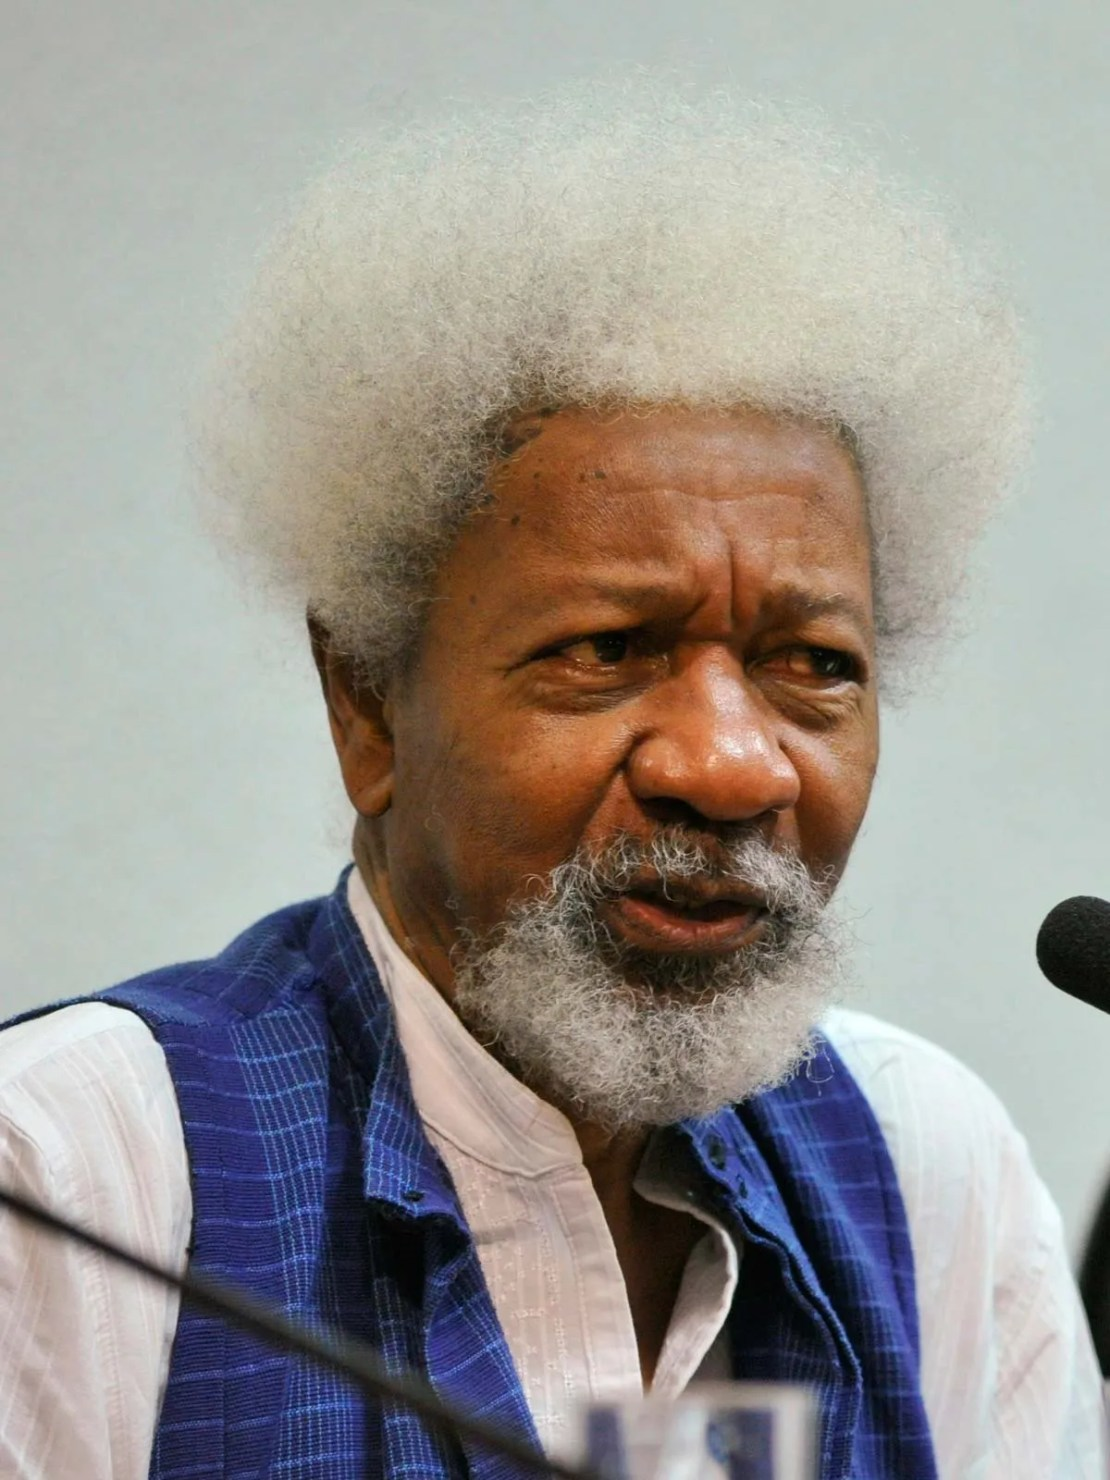 Wole Soyinka | Biography, Plays, Books, & Facts | Britannica